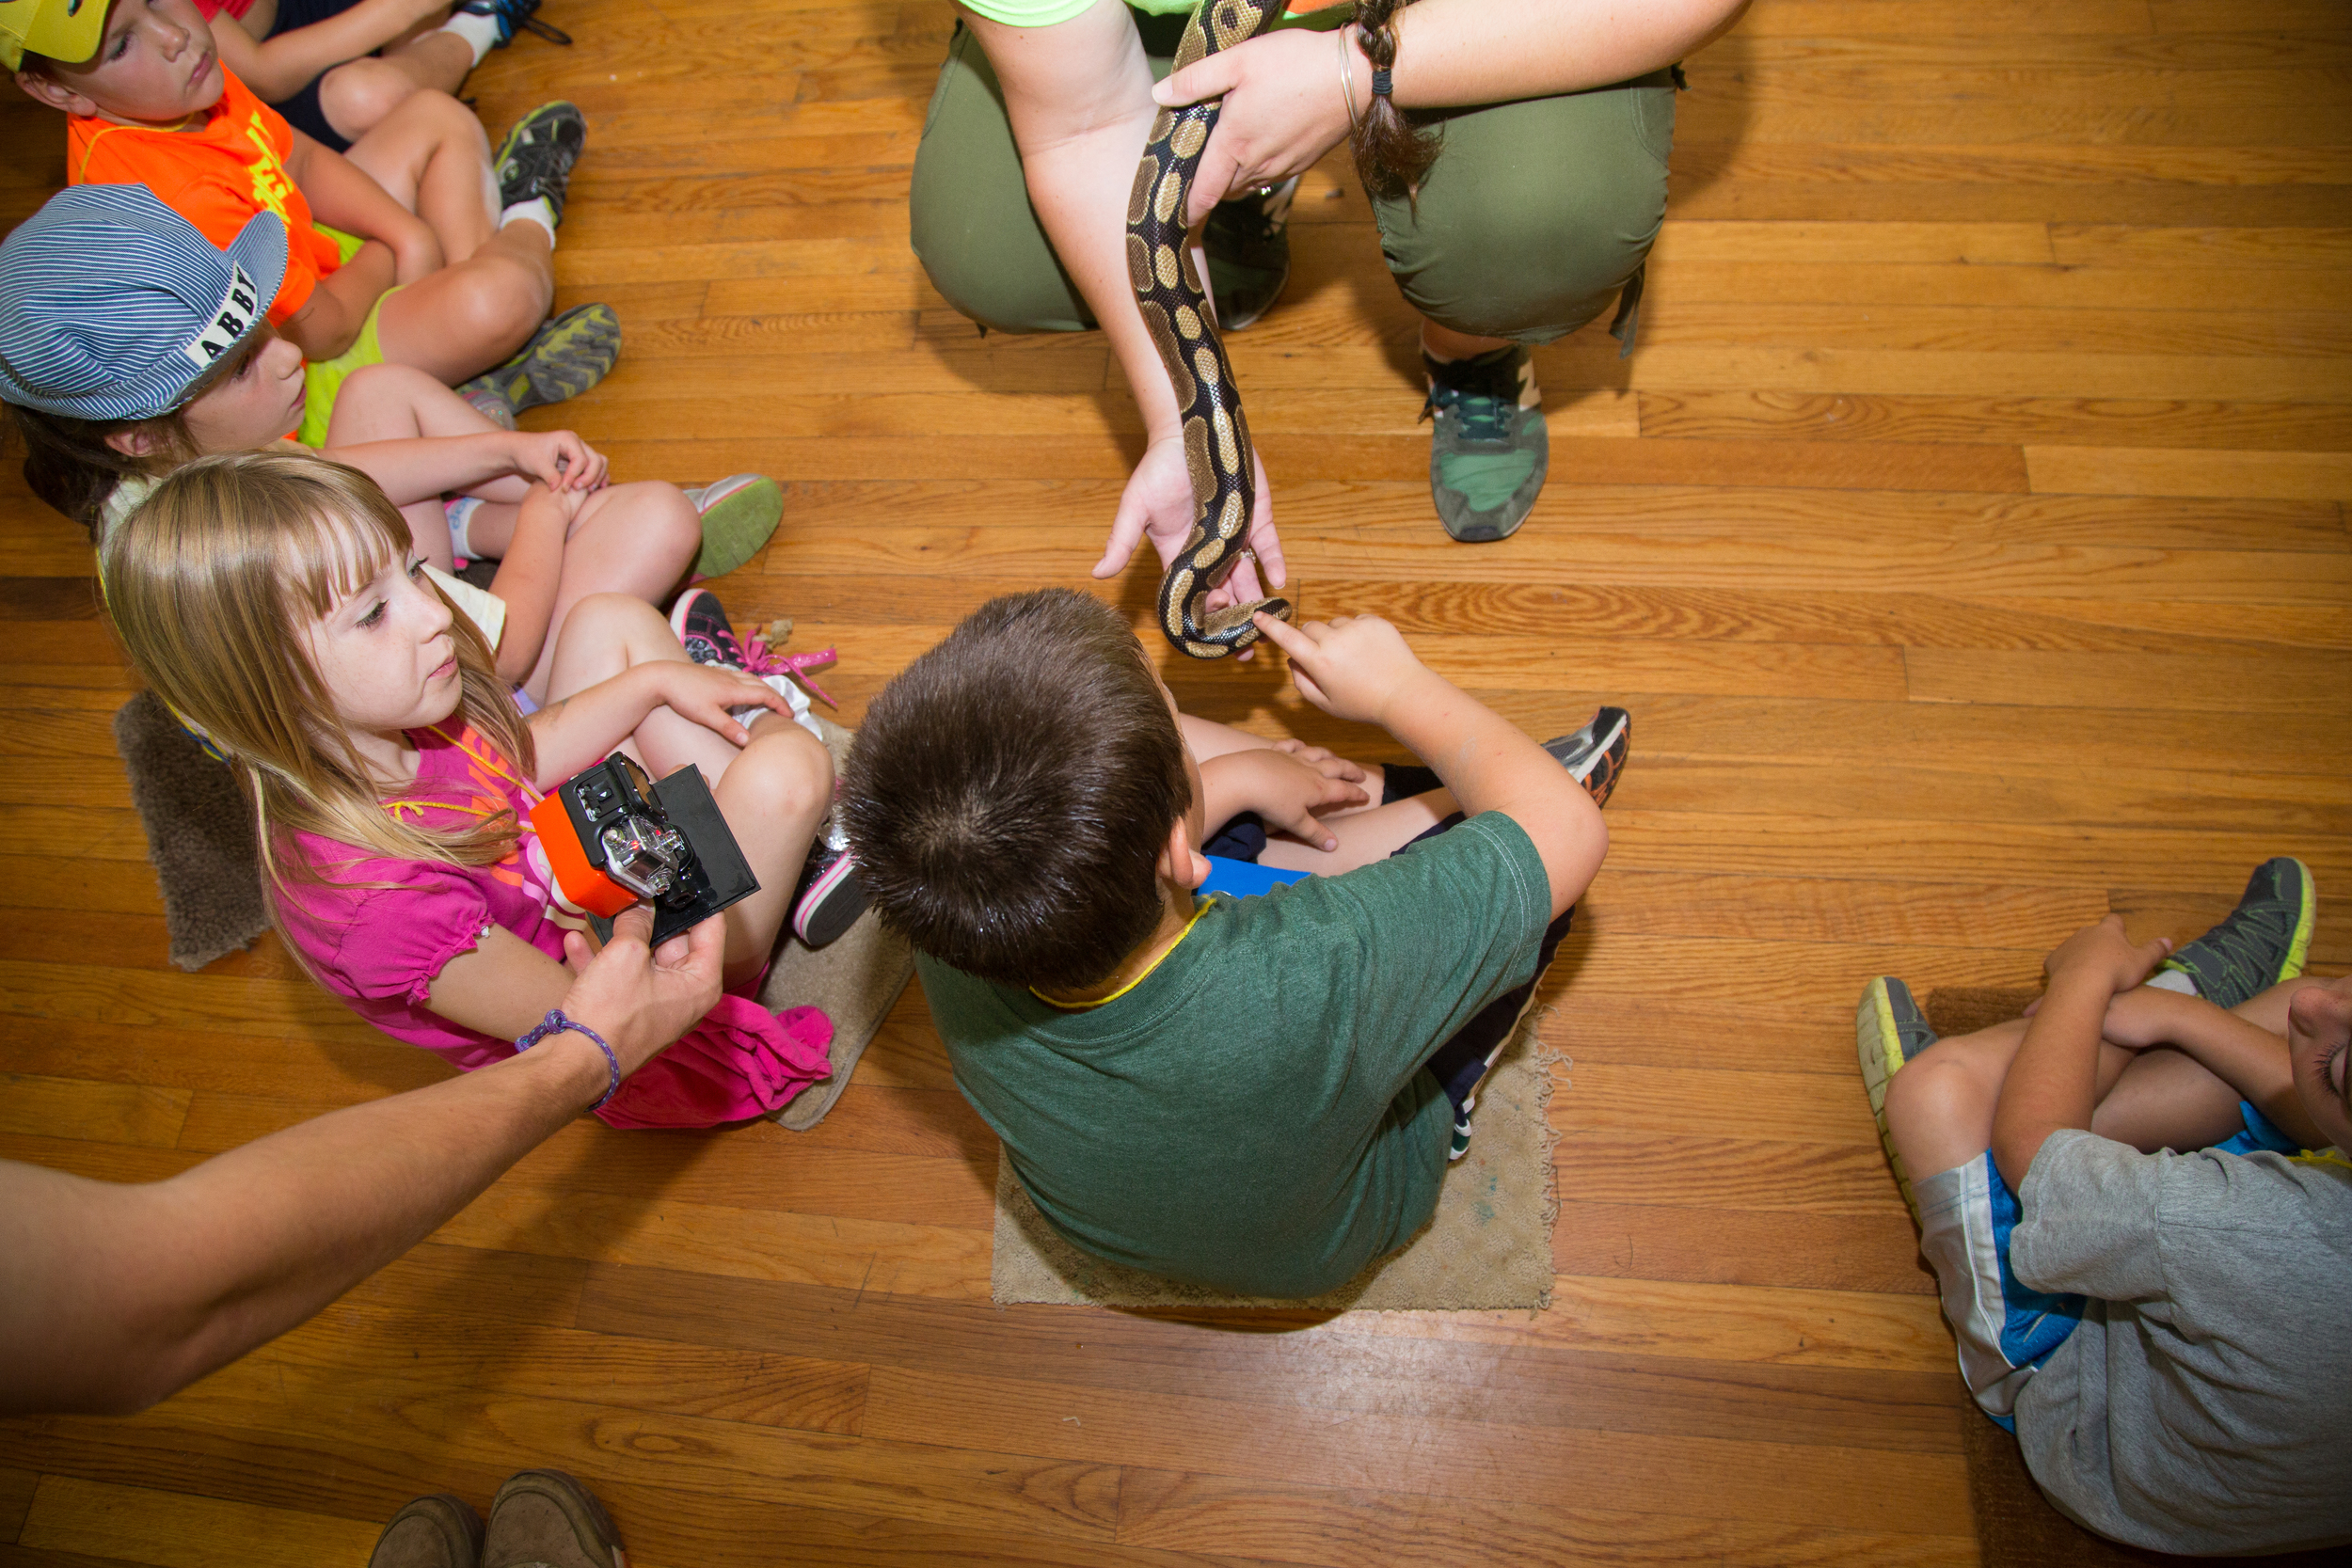 Students touch a huge snake while a counselor documents at Woodcock Nature Center.